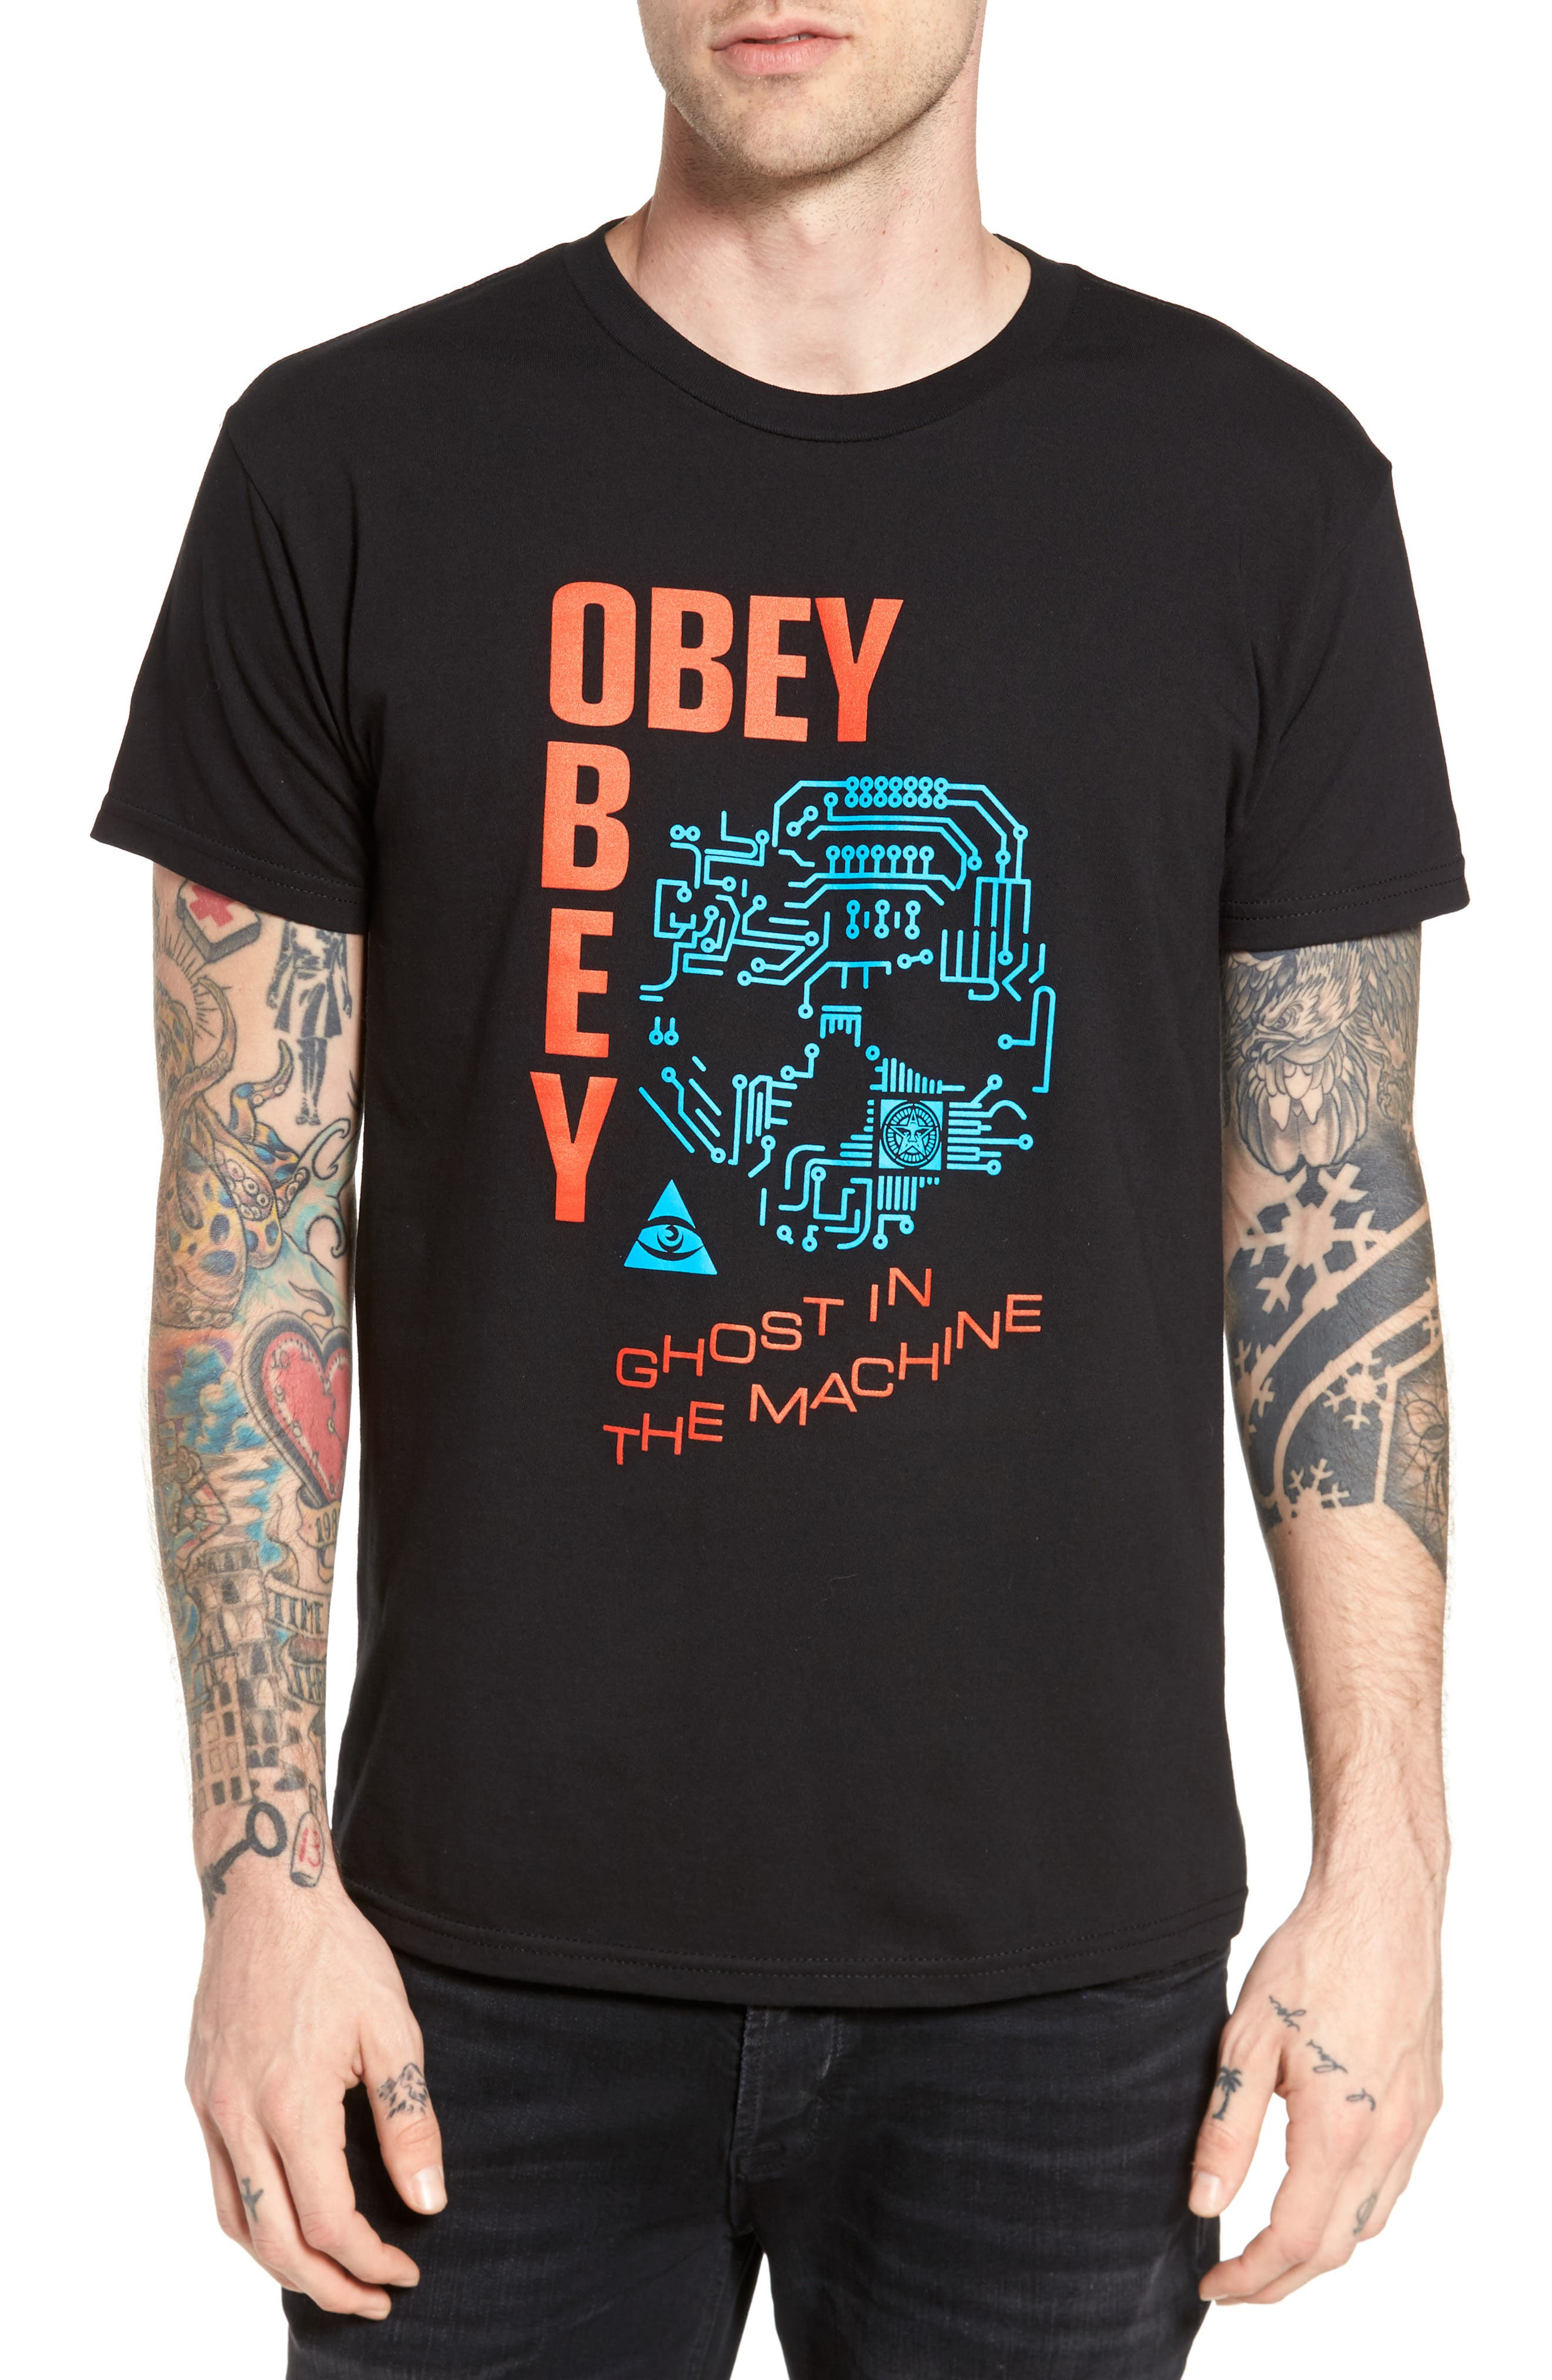 Alternate Image 1 Selected - Obey Ghosts in the Machine Premium Graphic T-Shirt